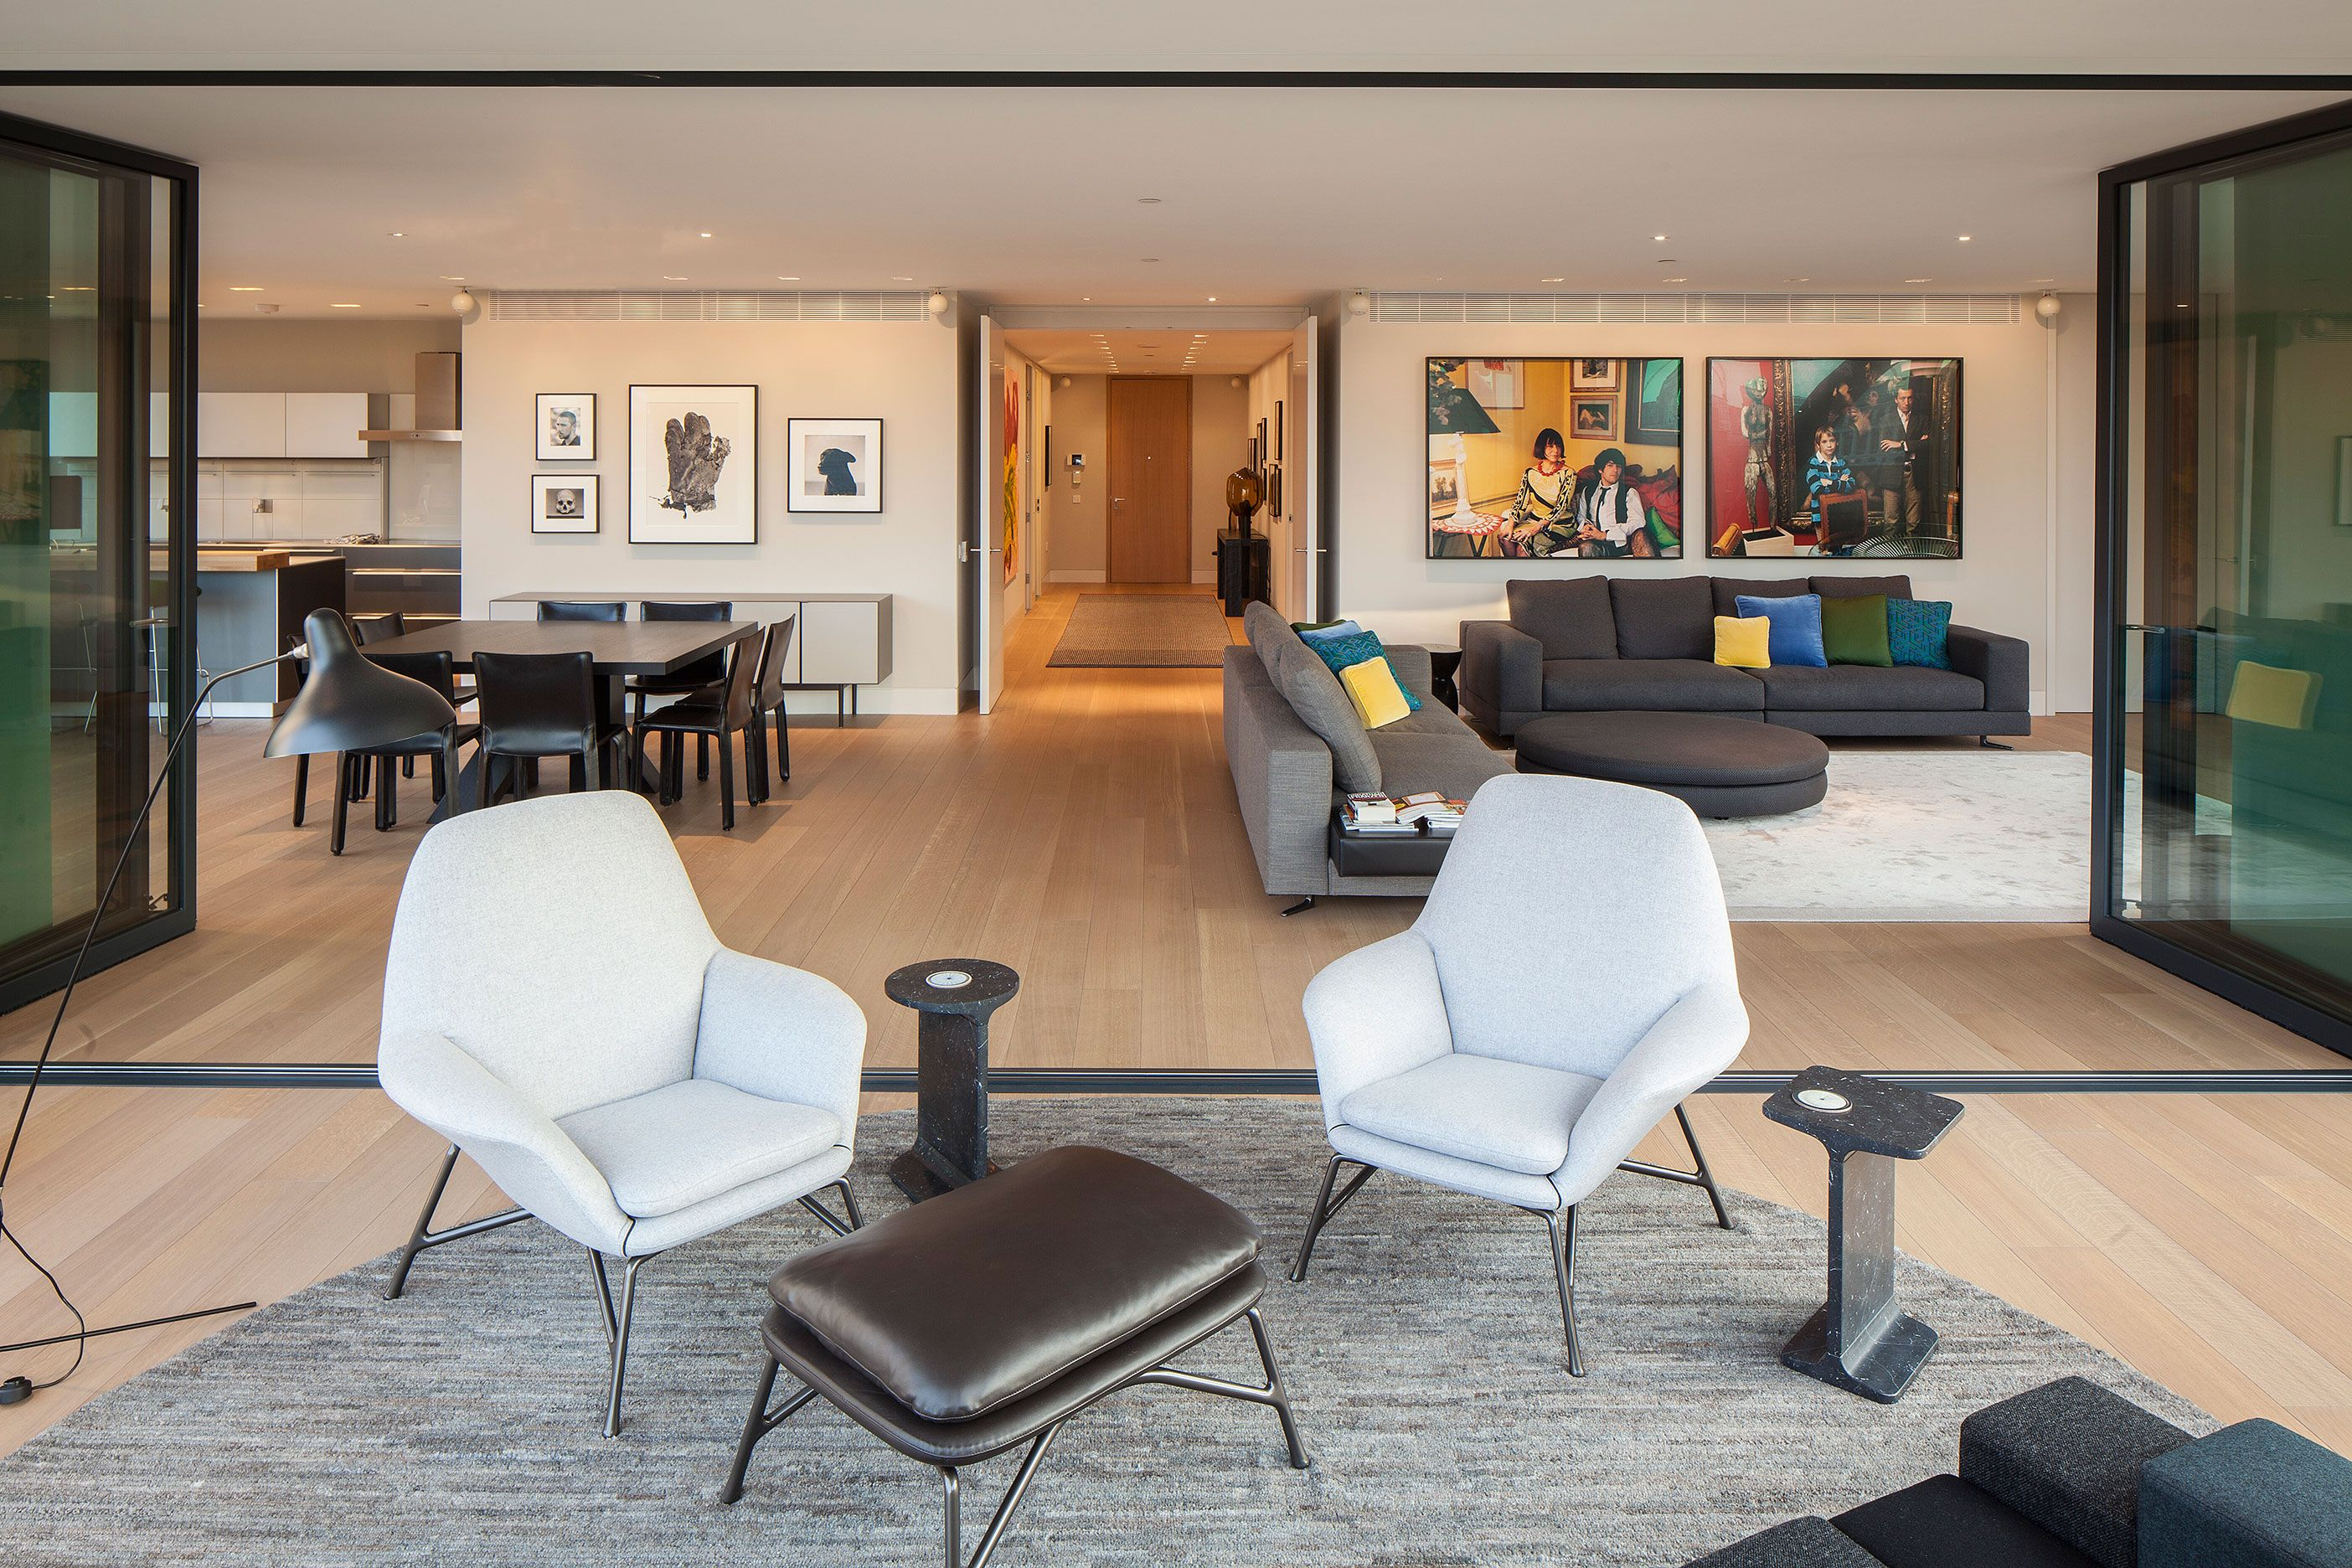 Apartment modern interior residential architecture design furniture london luxury detail coveburgess penthouse